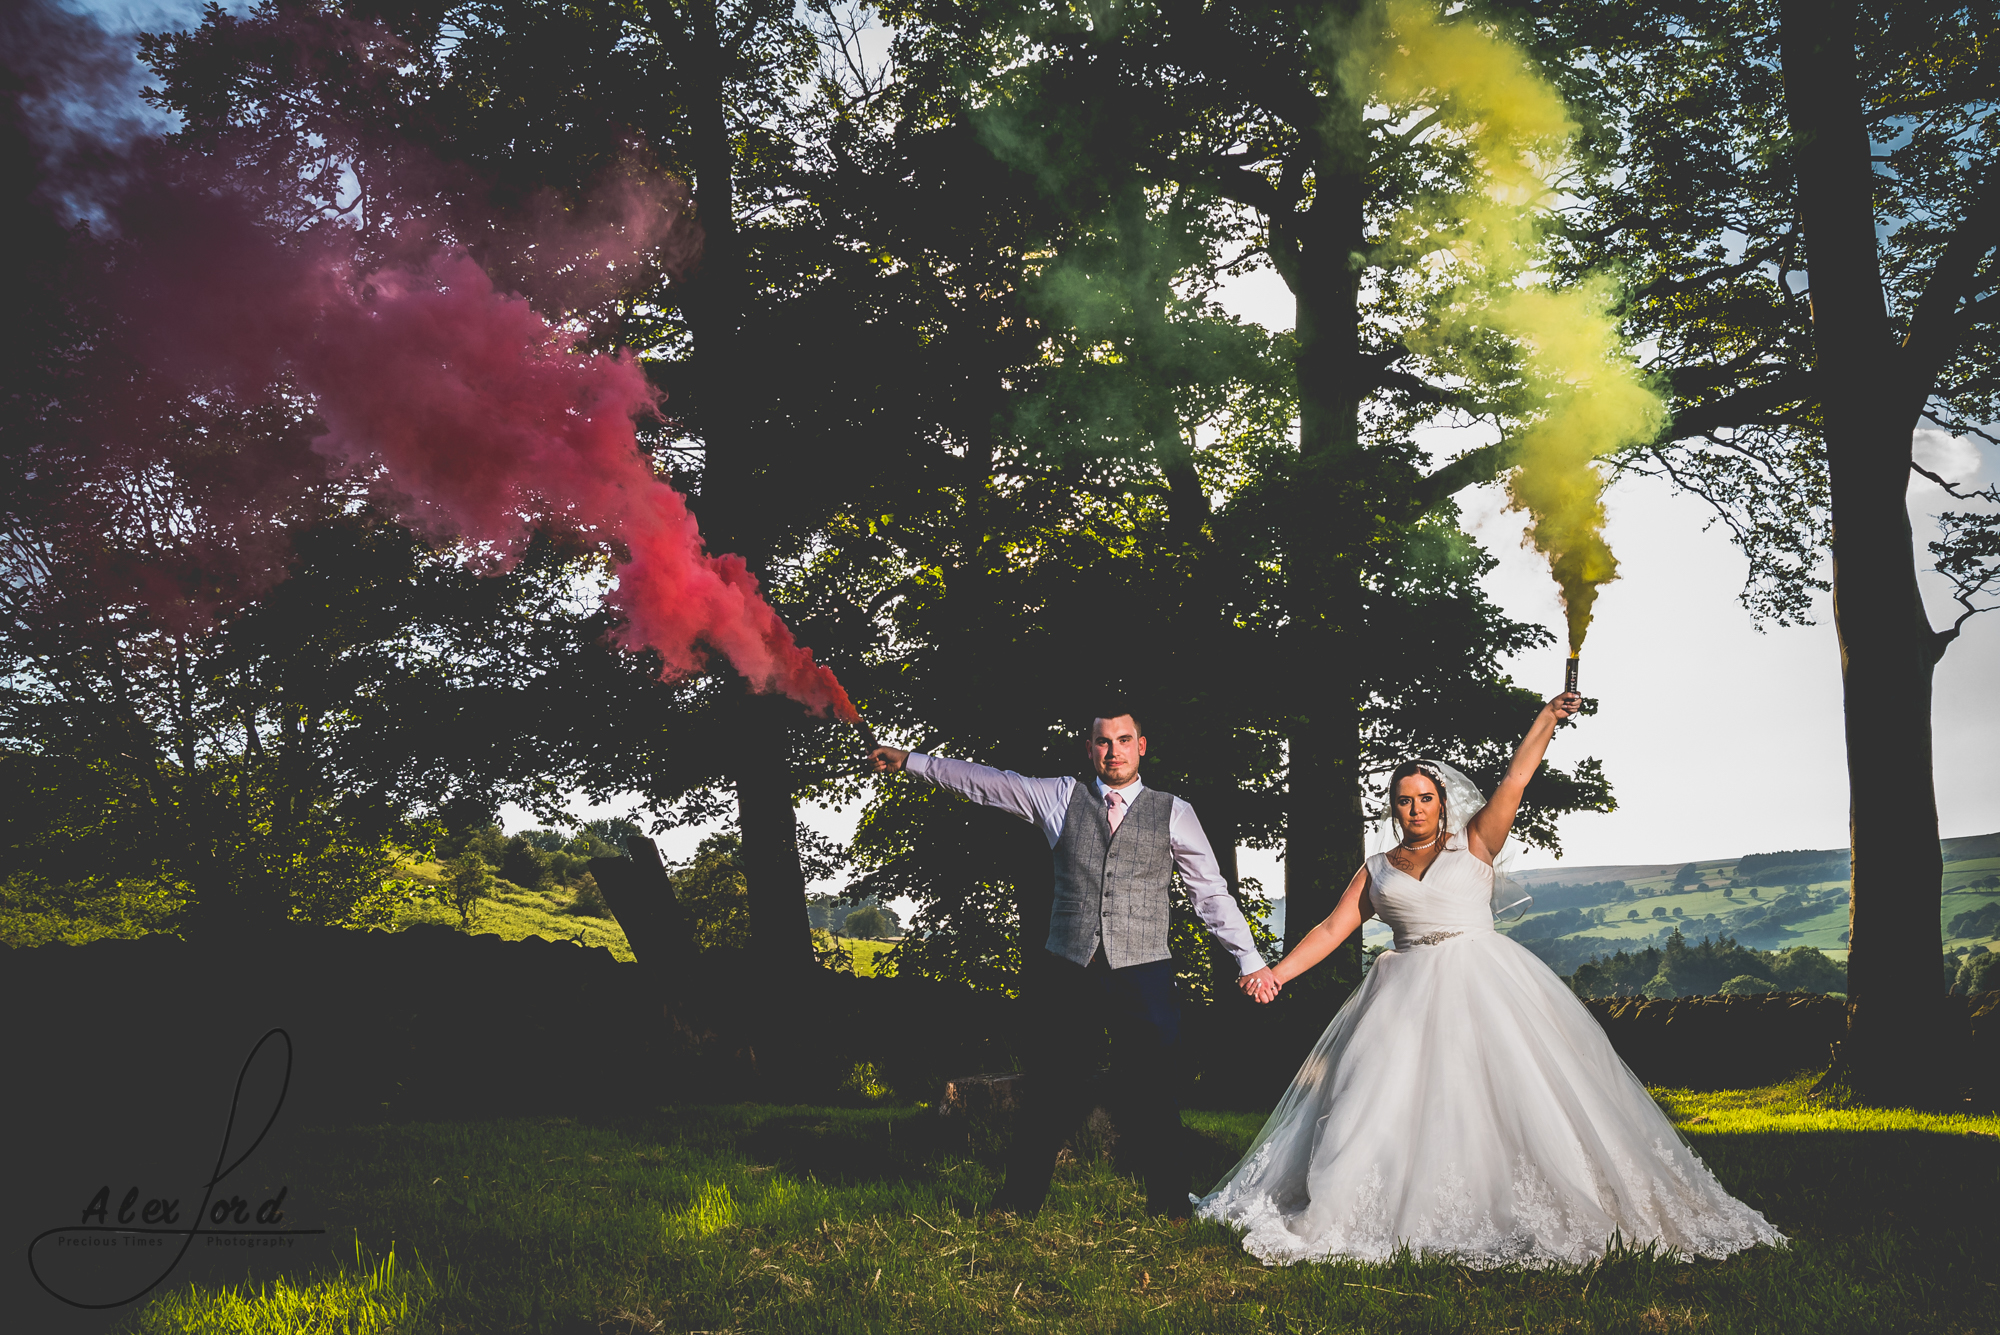 The bride and groom hold coloured smoke bombs while they pose for their wedding photo